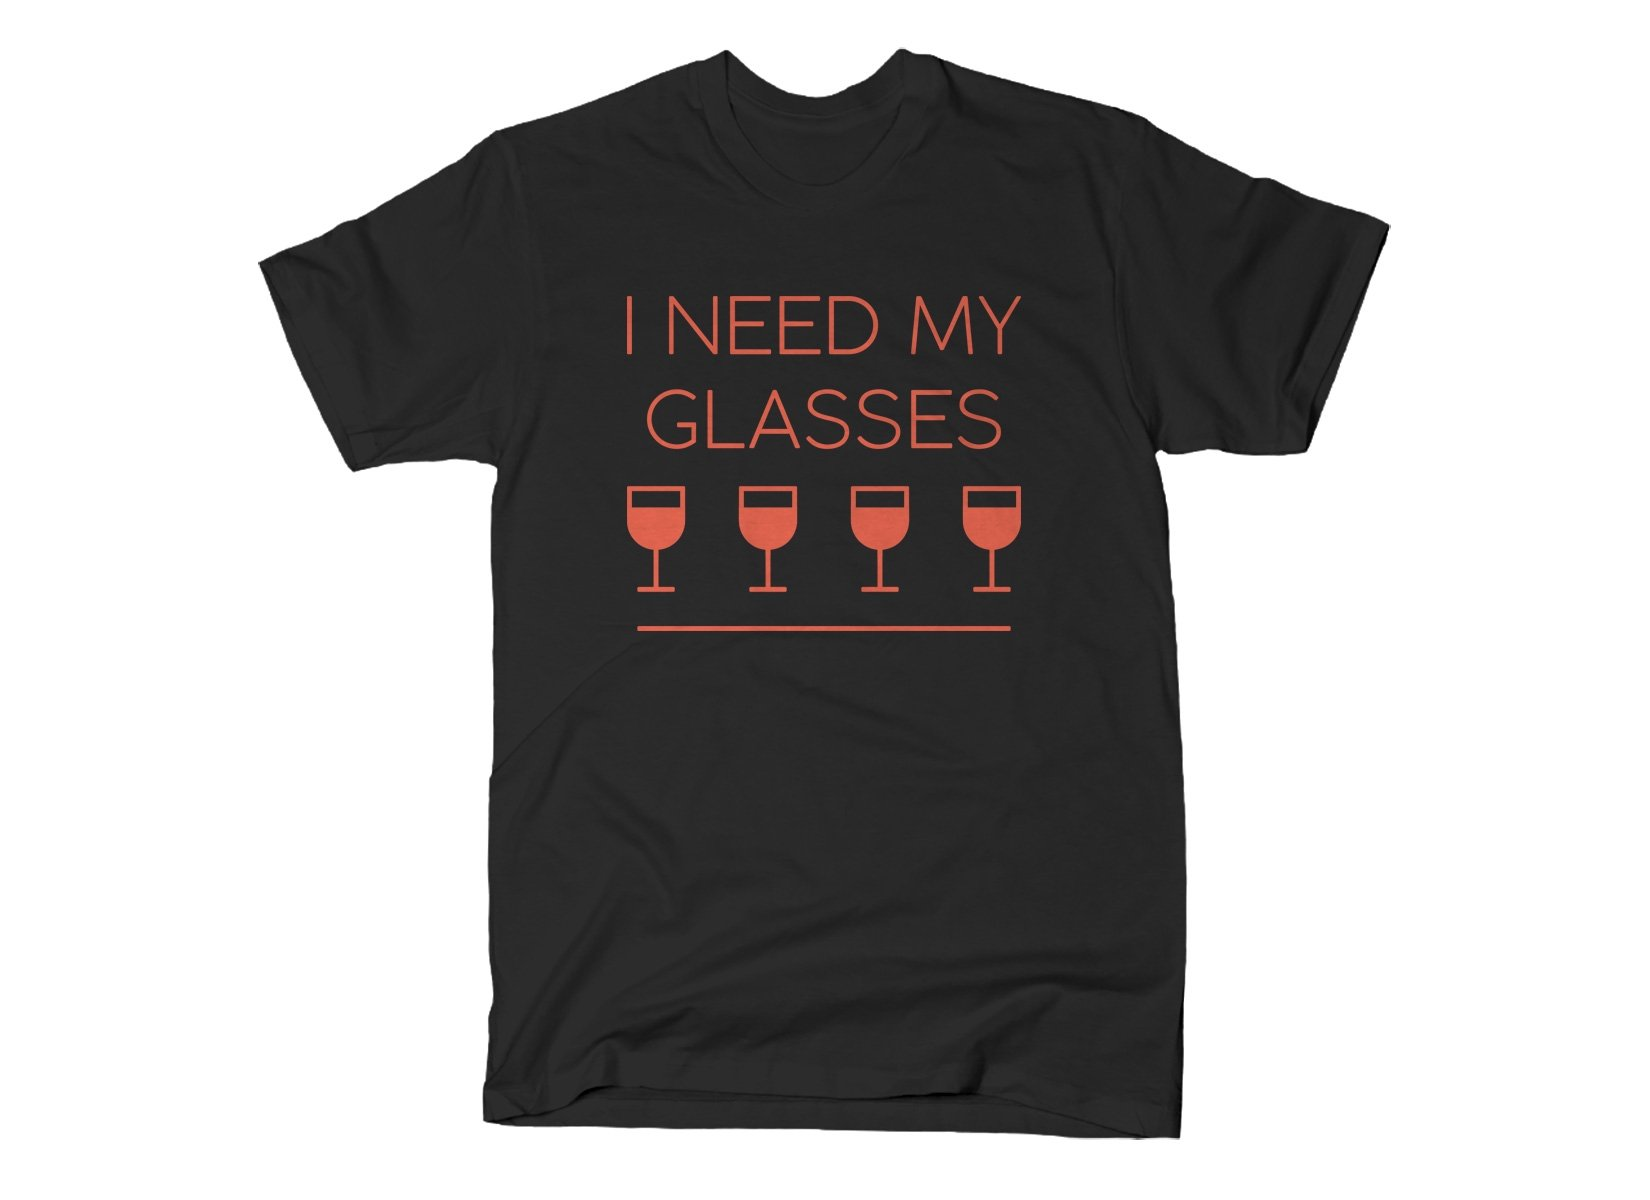 I Need My Glasses on Mens T-Shirt